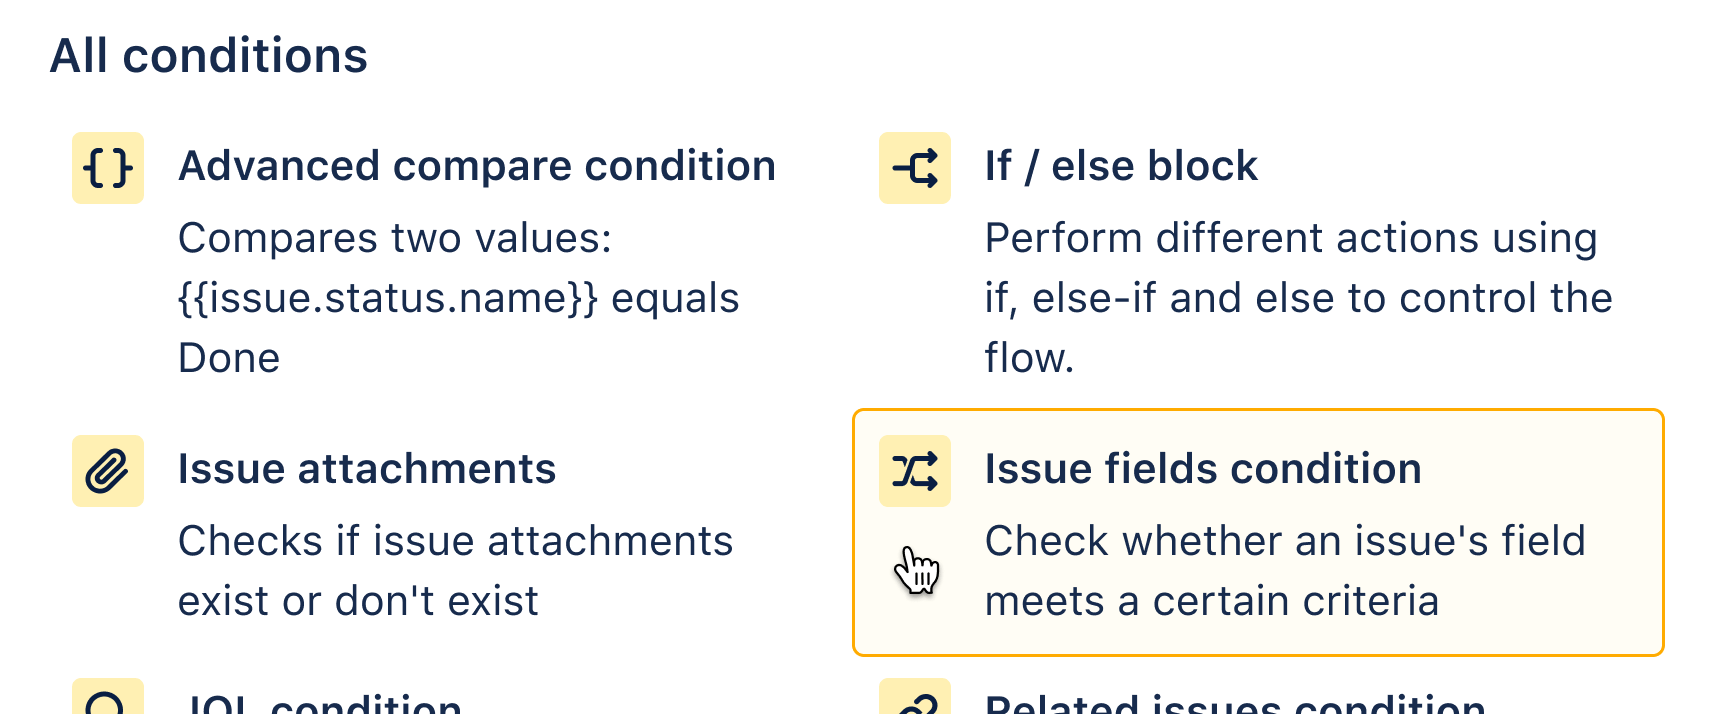 Adding issue fields condition